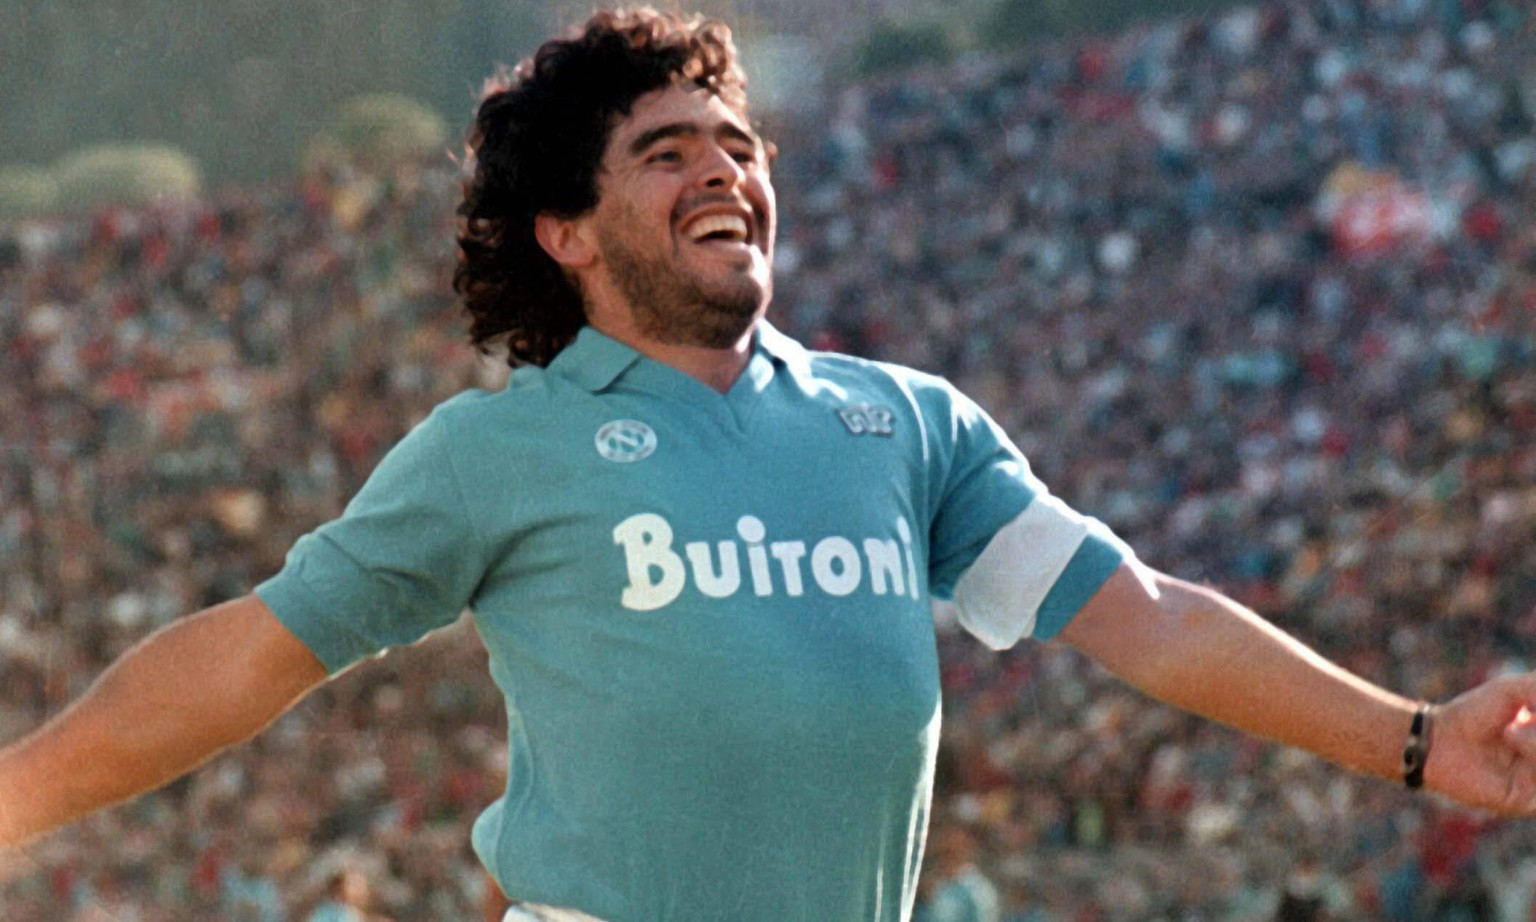 Bildnummer: 04056145  Datum: 01.01.1988  Copyright: imago/Granata Images Diego Armando Maradona (Neapel) - Torjubel - PUBLICATIONxINxGERxSUIxAUTxONLY; Vneg, quer, close, Jubel, Serie A 1987/1988, 1. Italienische Liga, SSC Napoli Neapel Aufnahmedatum geschätzt, Freude,  Fußball Herren Mannschaft Italien Einzelbild optimistisch Aktion Personen  Image number 04056145 date 01 01 1988 Copyright imago Granata Images Diego Armando Maradona Naples goal celebration PUBLICATIONxINxGERxSUIxAUTxONLY Vneg horizontal Close cheering Series A 1987 1988 1 Italian League SSC Napoli Naples date estimated happiness Football men Team Italy Single optimistic Action shot Human Beings